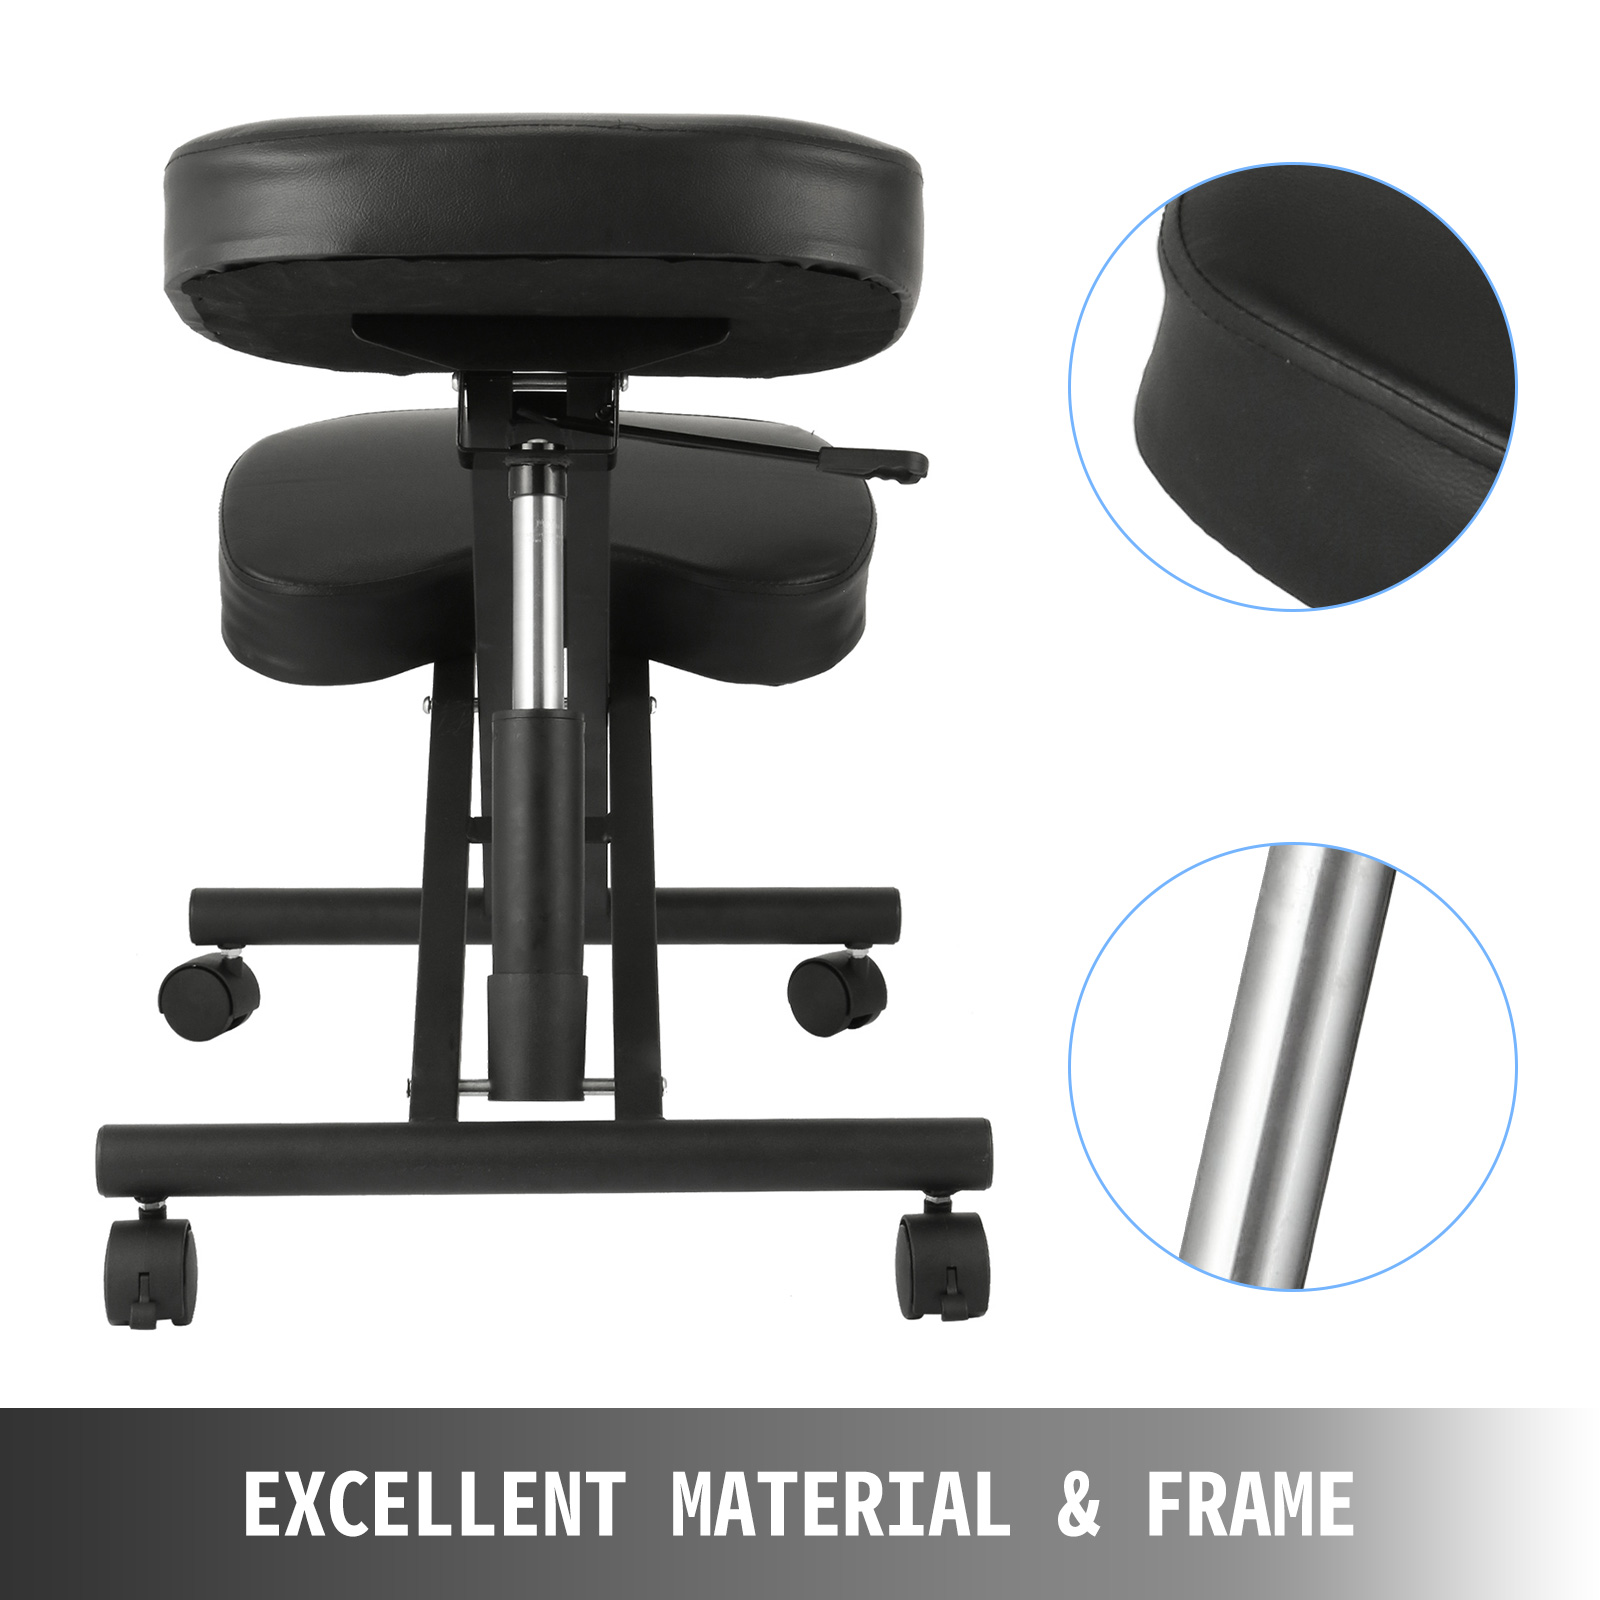 kneeling chair m100 3 - VEVOR Ergonomic Kneeling Chair Adjustable Kneeling Stool Thick Comfortable Cushions for Office Home Balancing Back Body Shaping